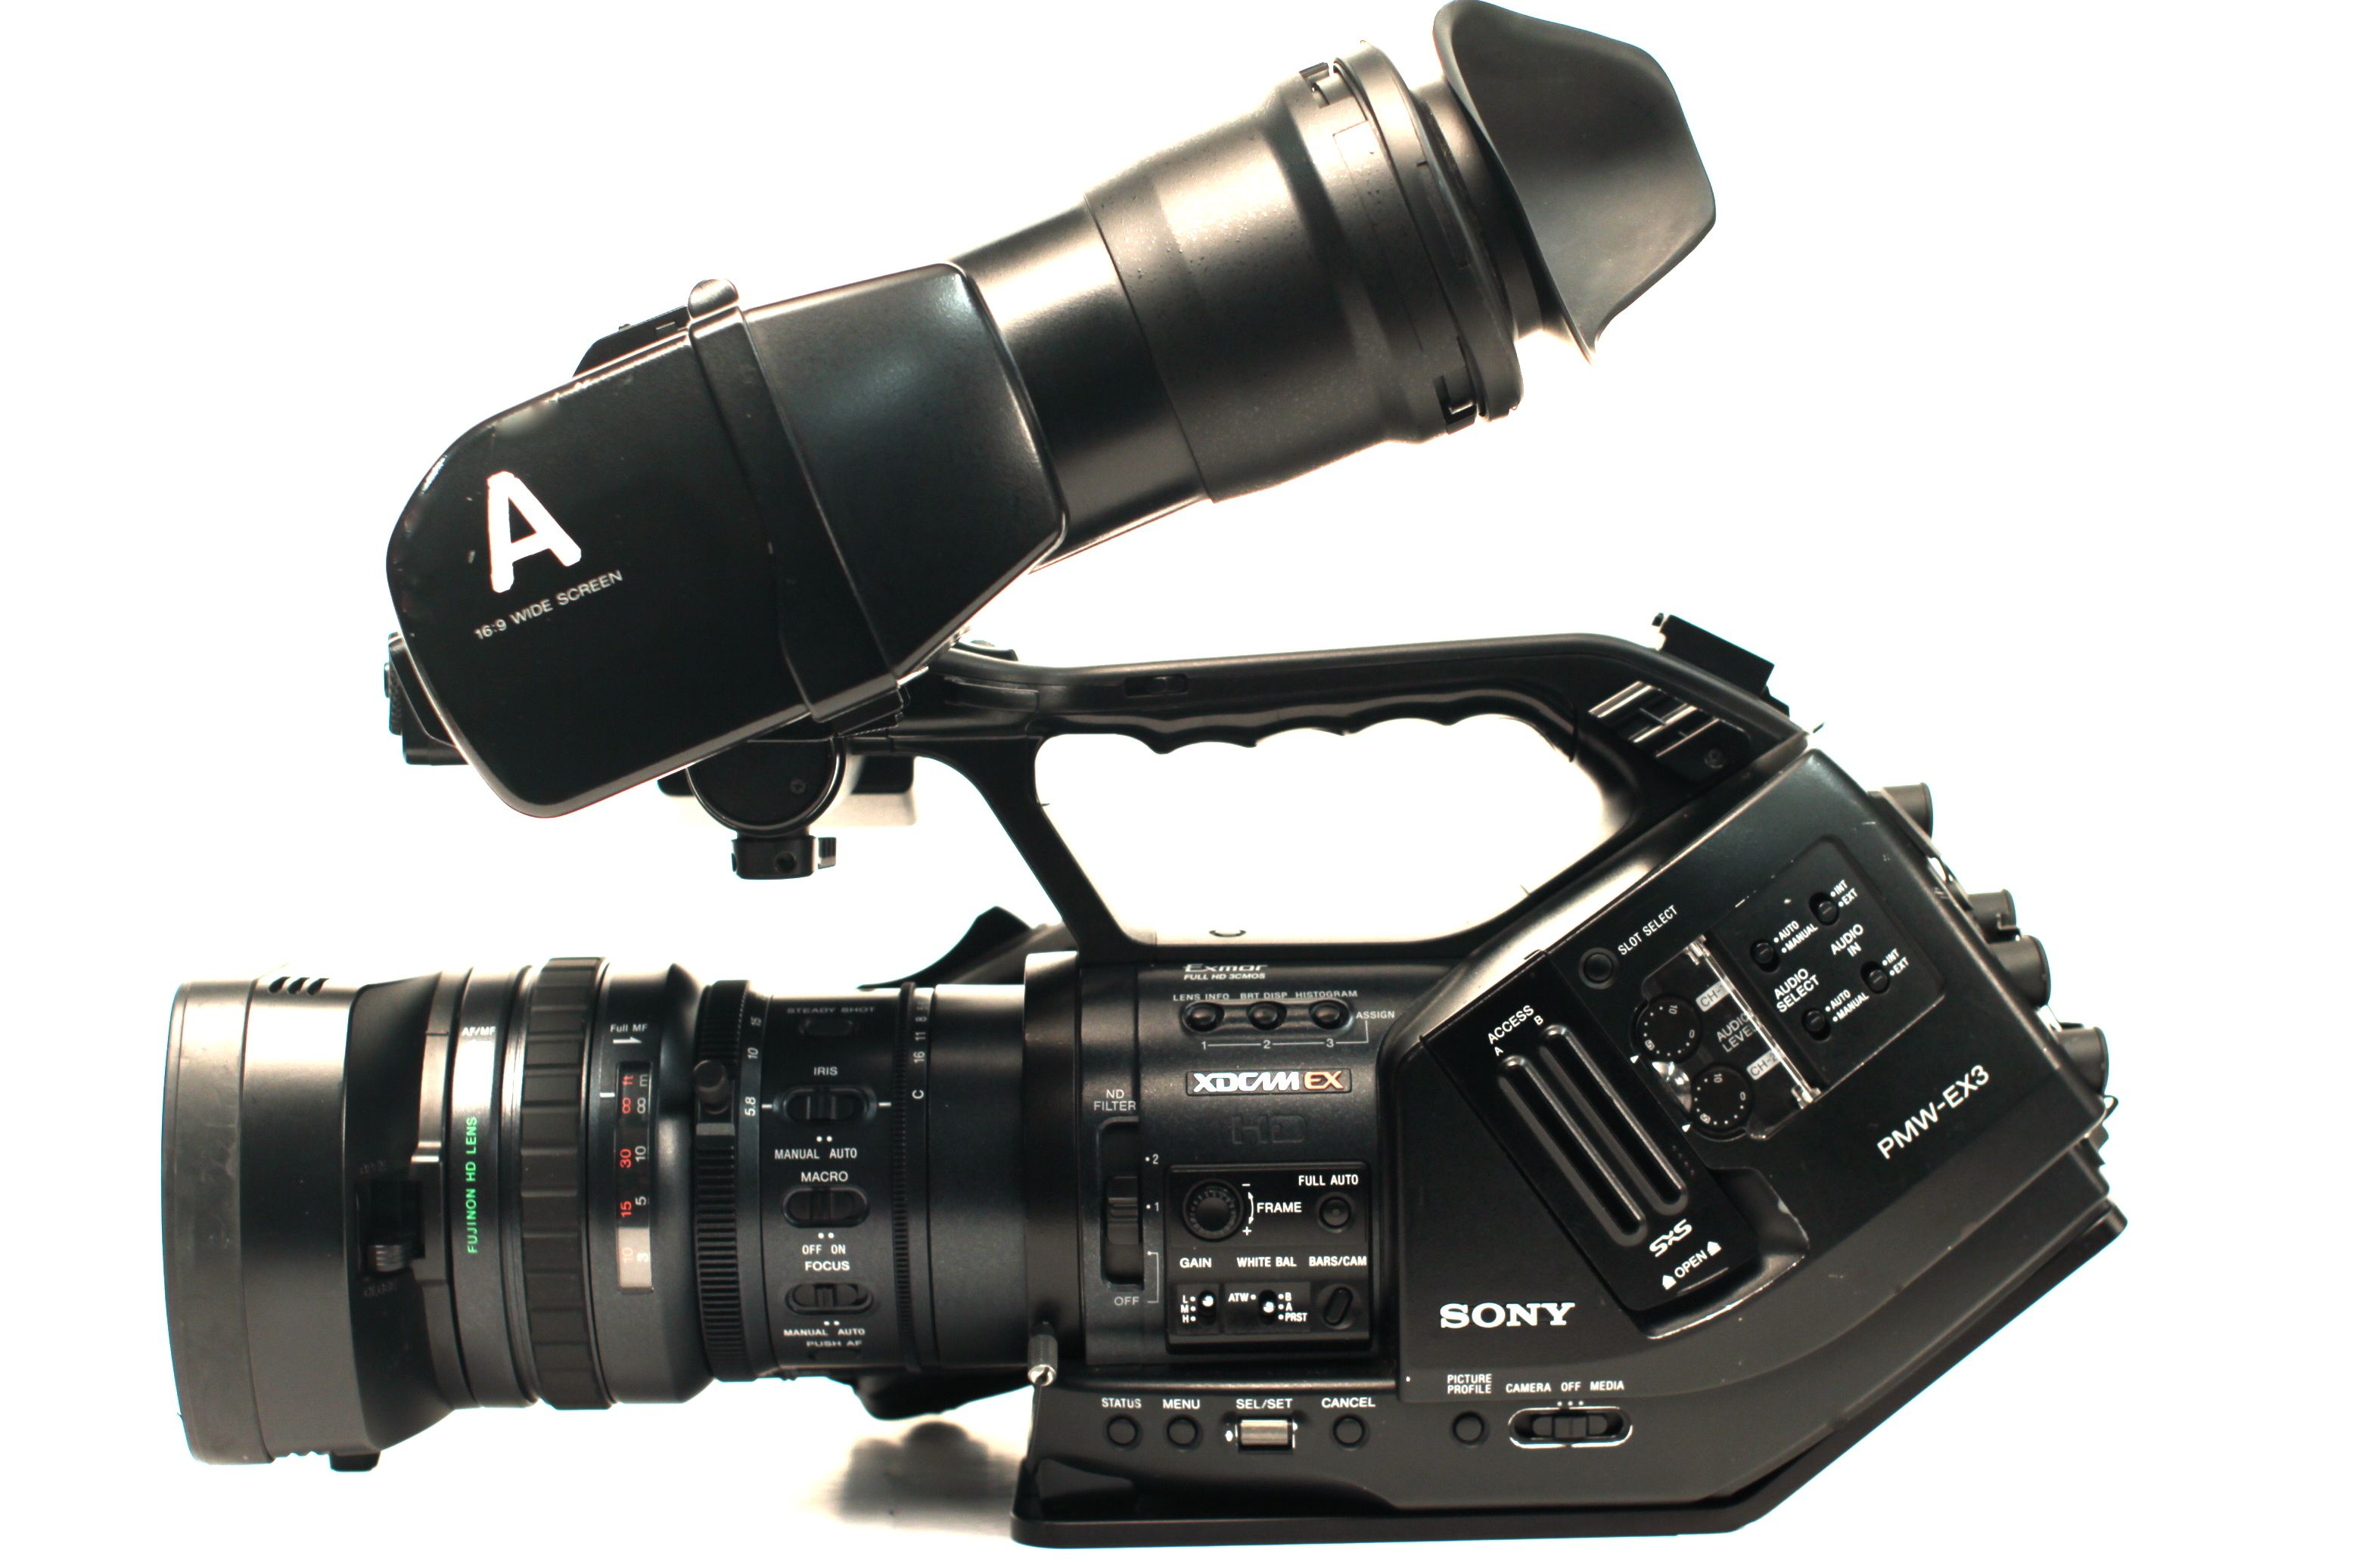 import and edit sony pmw ex3 xavc s video in imovie techidaily rh techidaily com Sony PMW -EX3 Manual Sony PMW -EX3 Manual